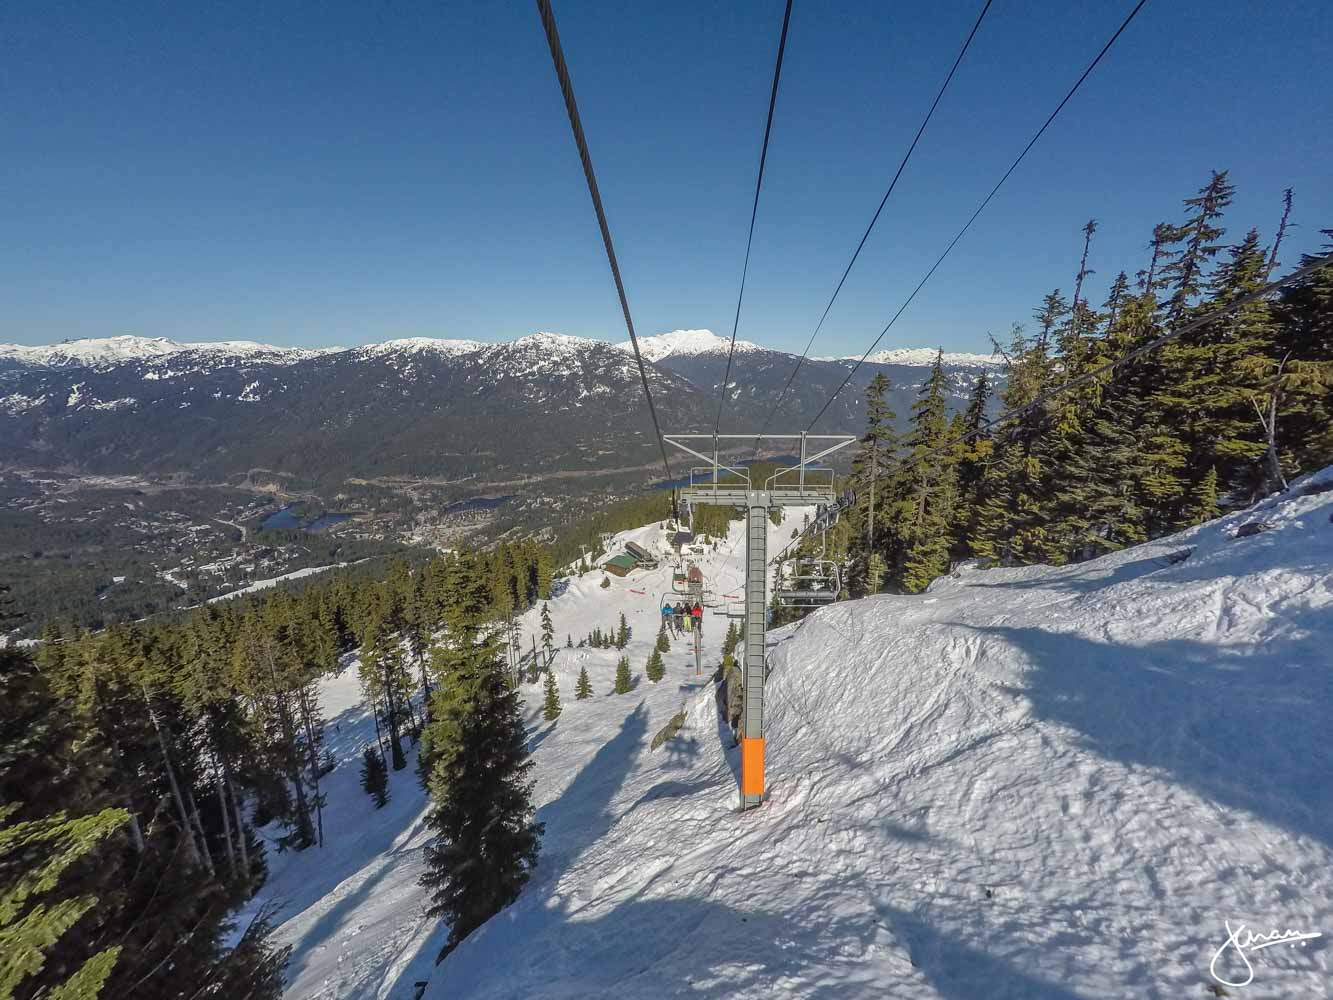 Creekside Chairlift